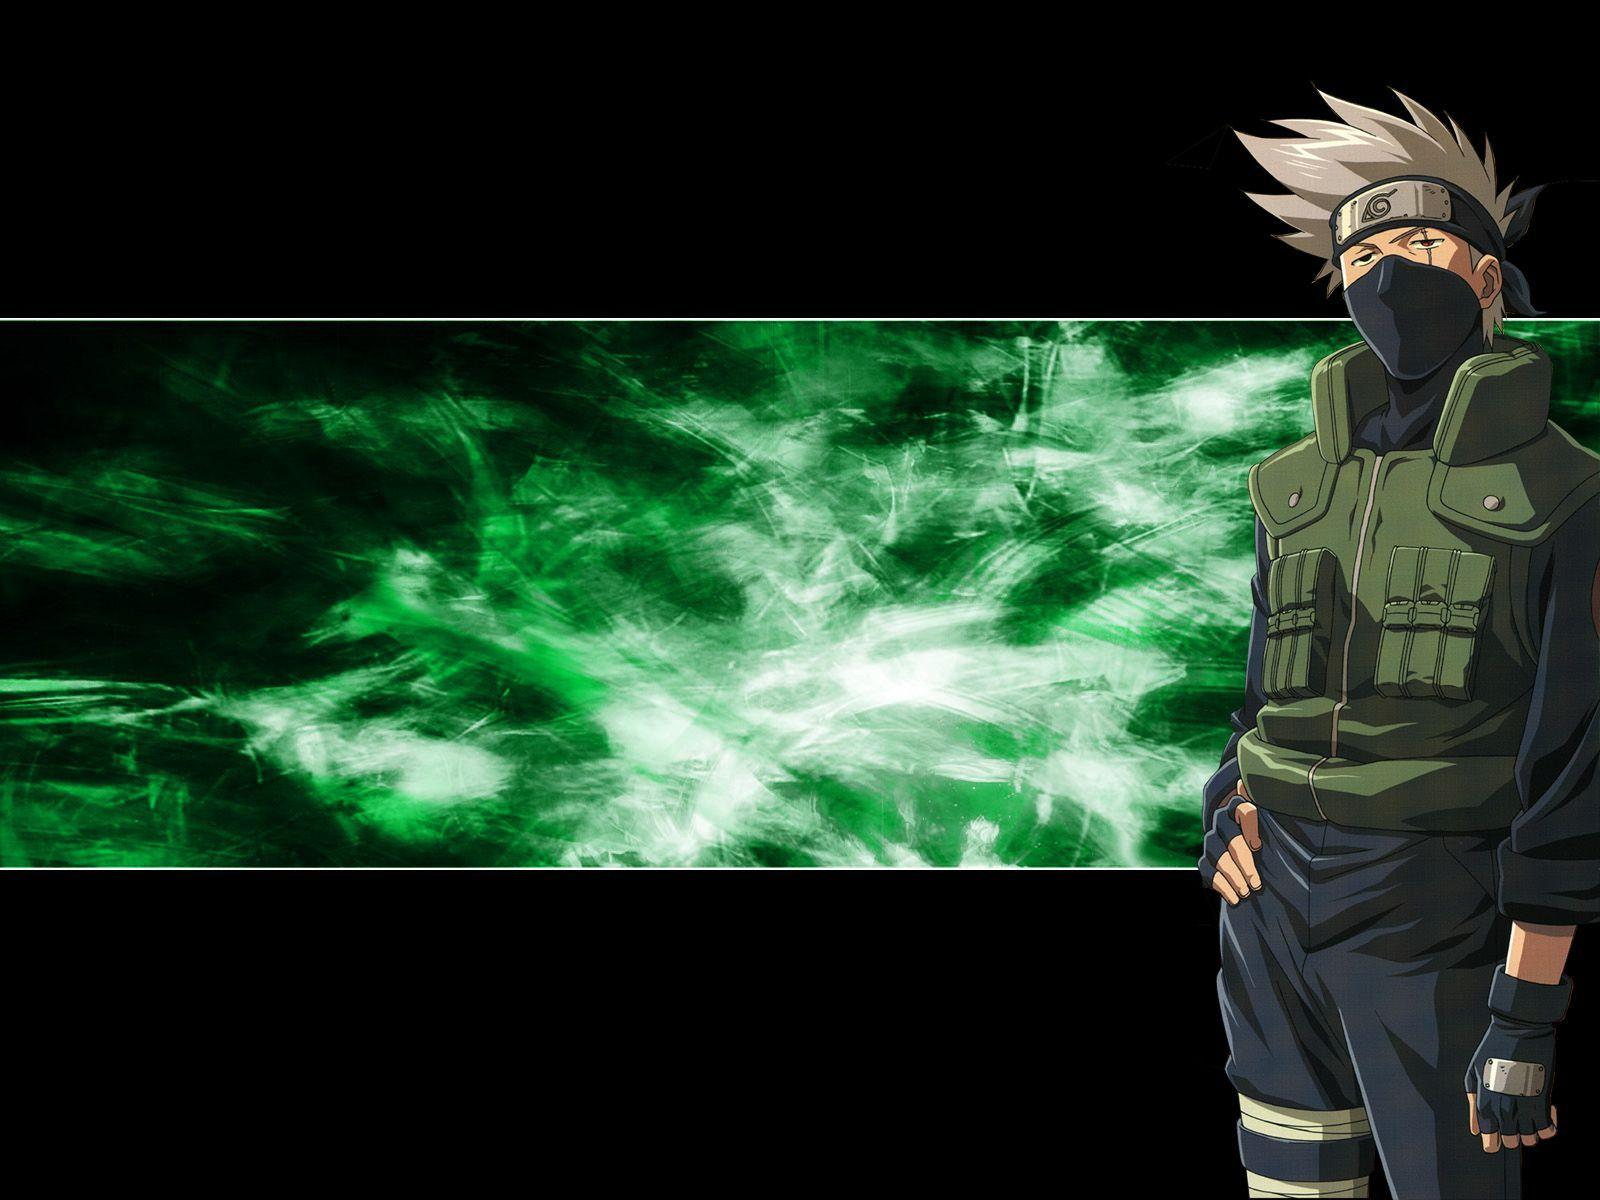 Kakashi Wallpaper 4k